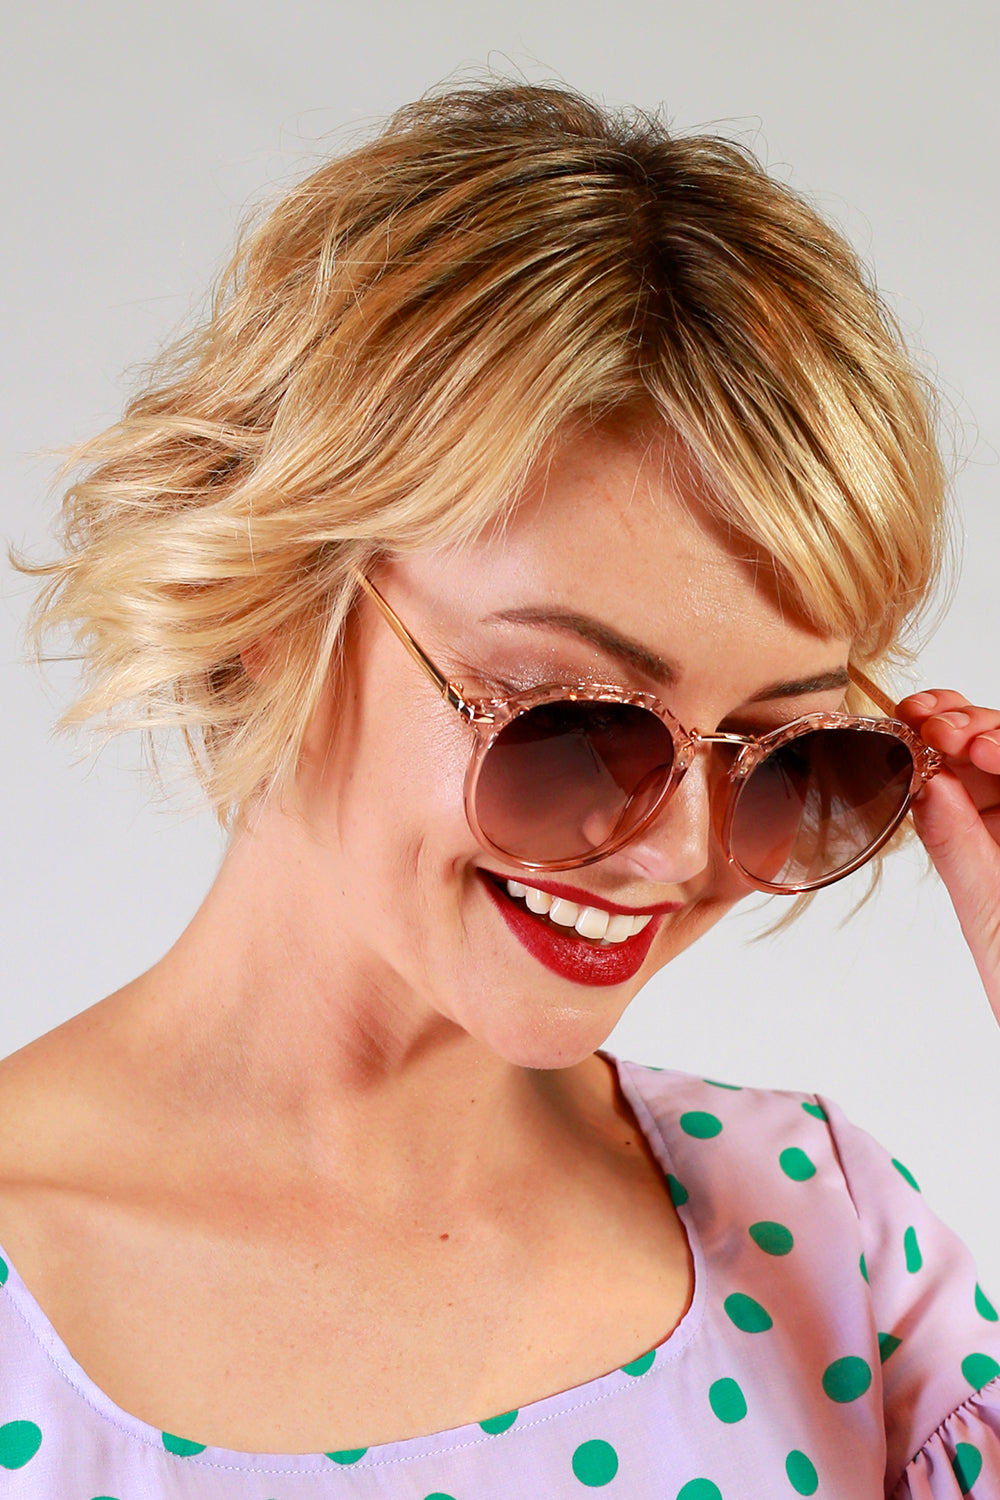 Bridgette Sunglasses | New Zealand Fashion Designer | Sunglasses | Annah Stretton